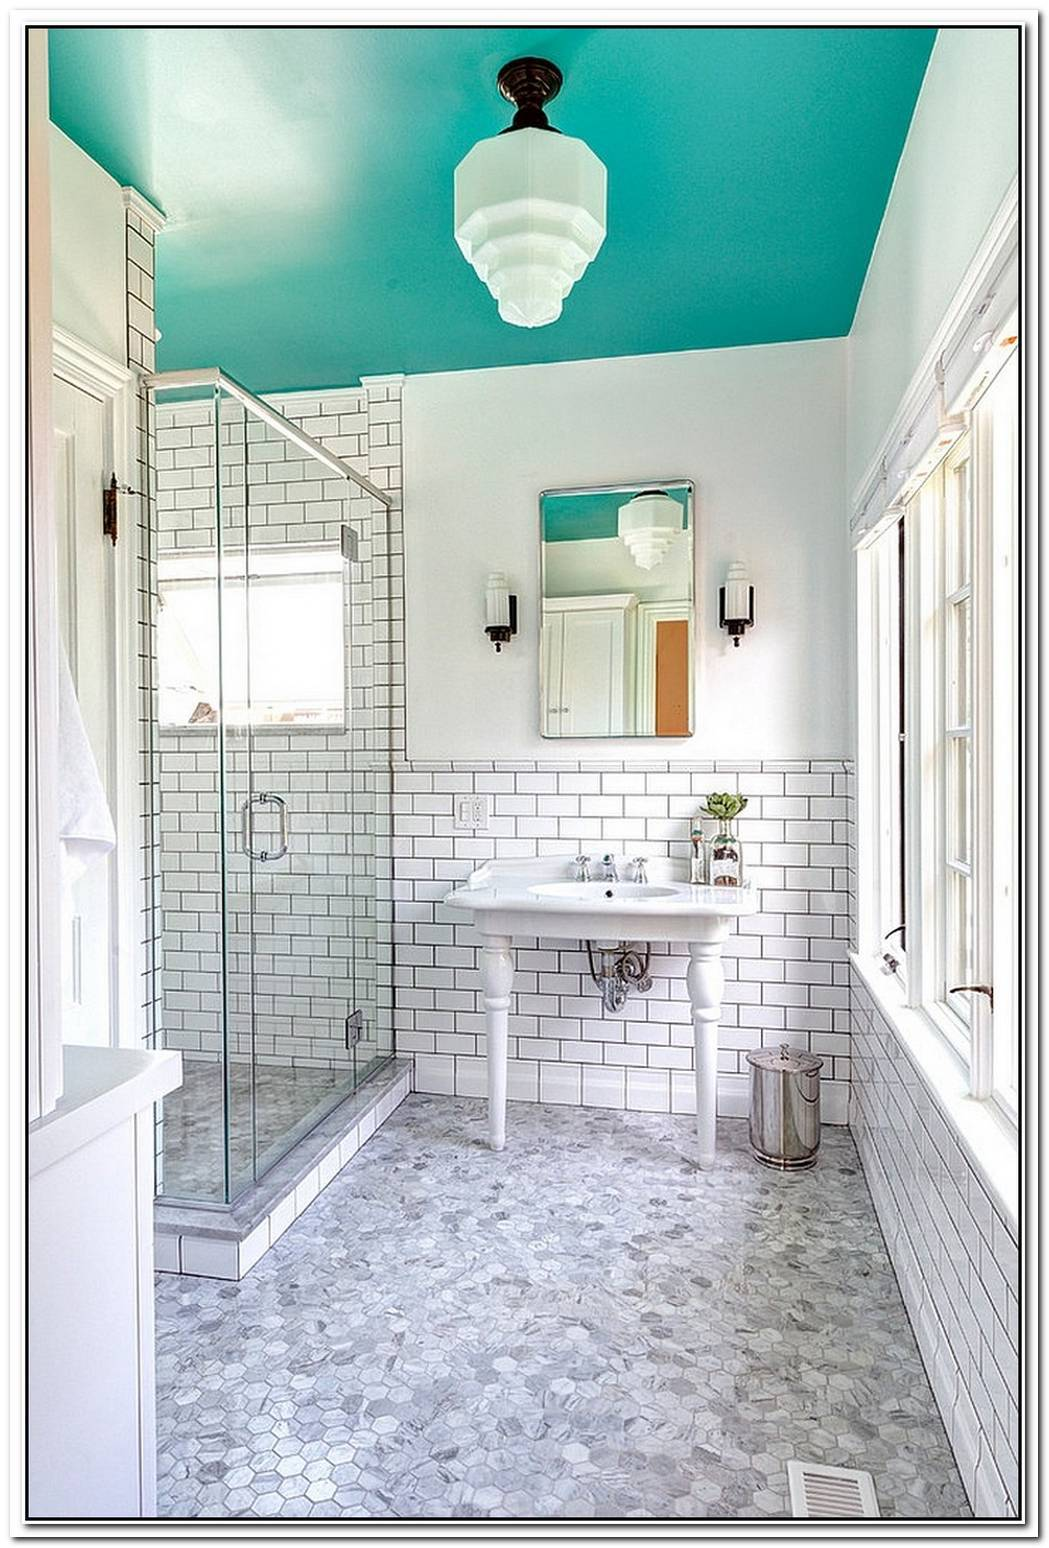 25 Bathrooms That Beat The Winter Blues With A Splash Of Color